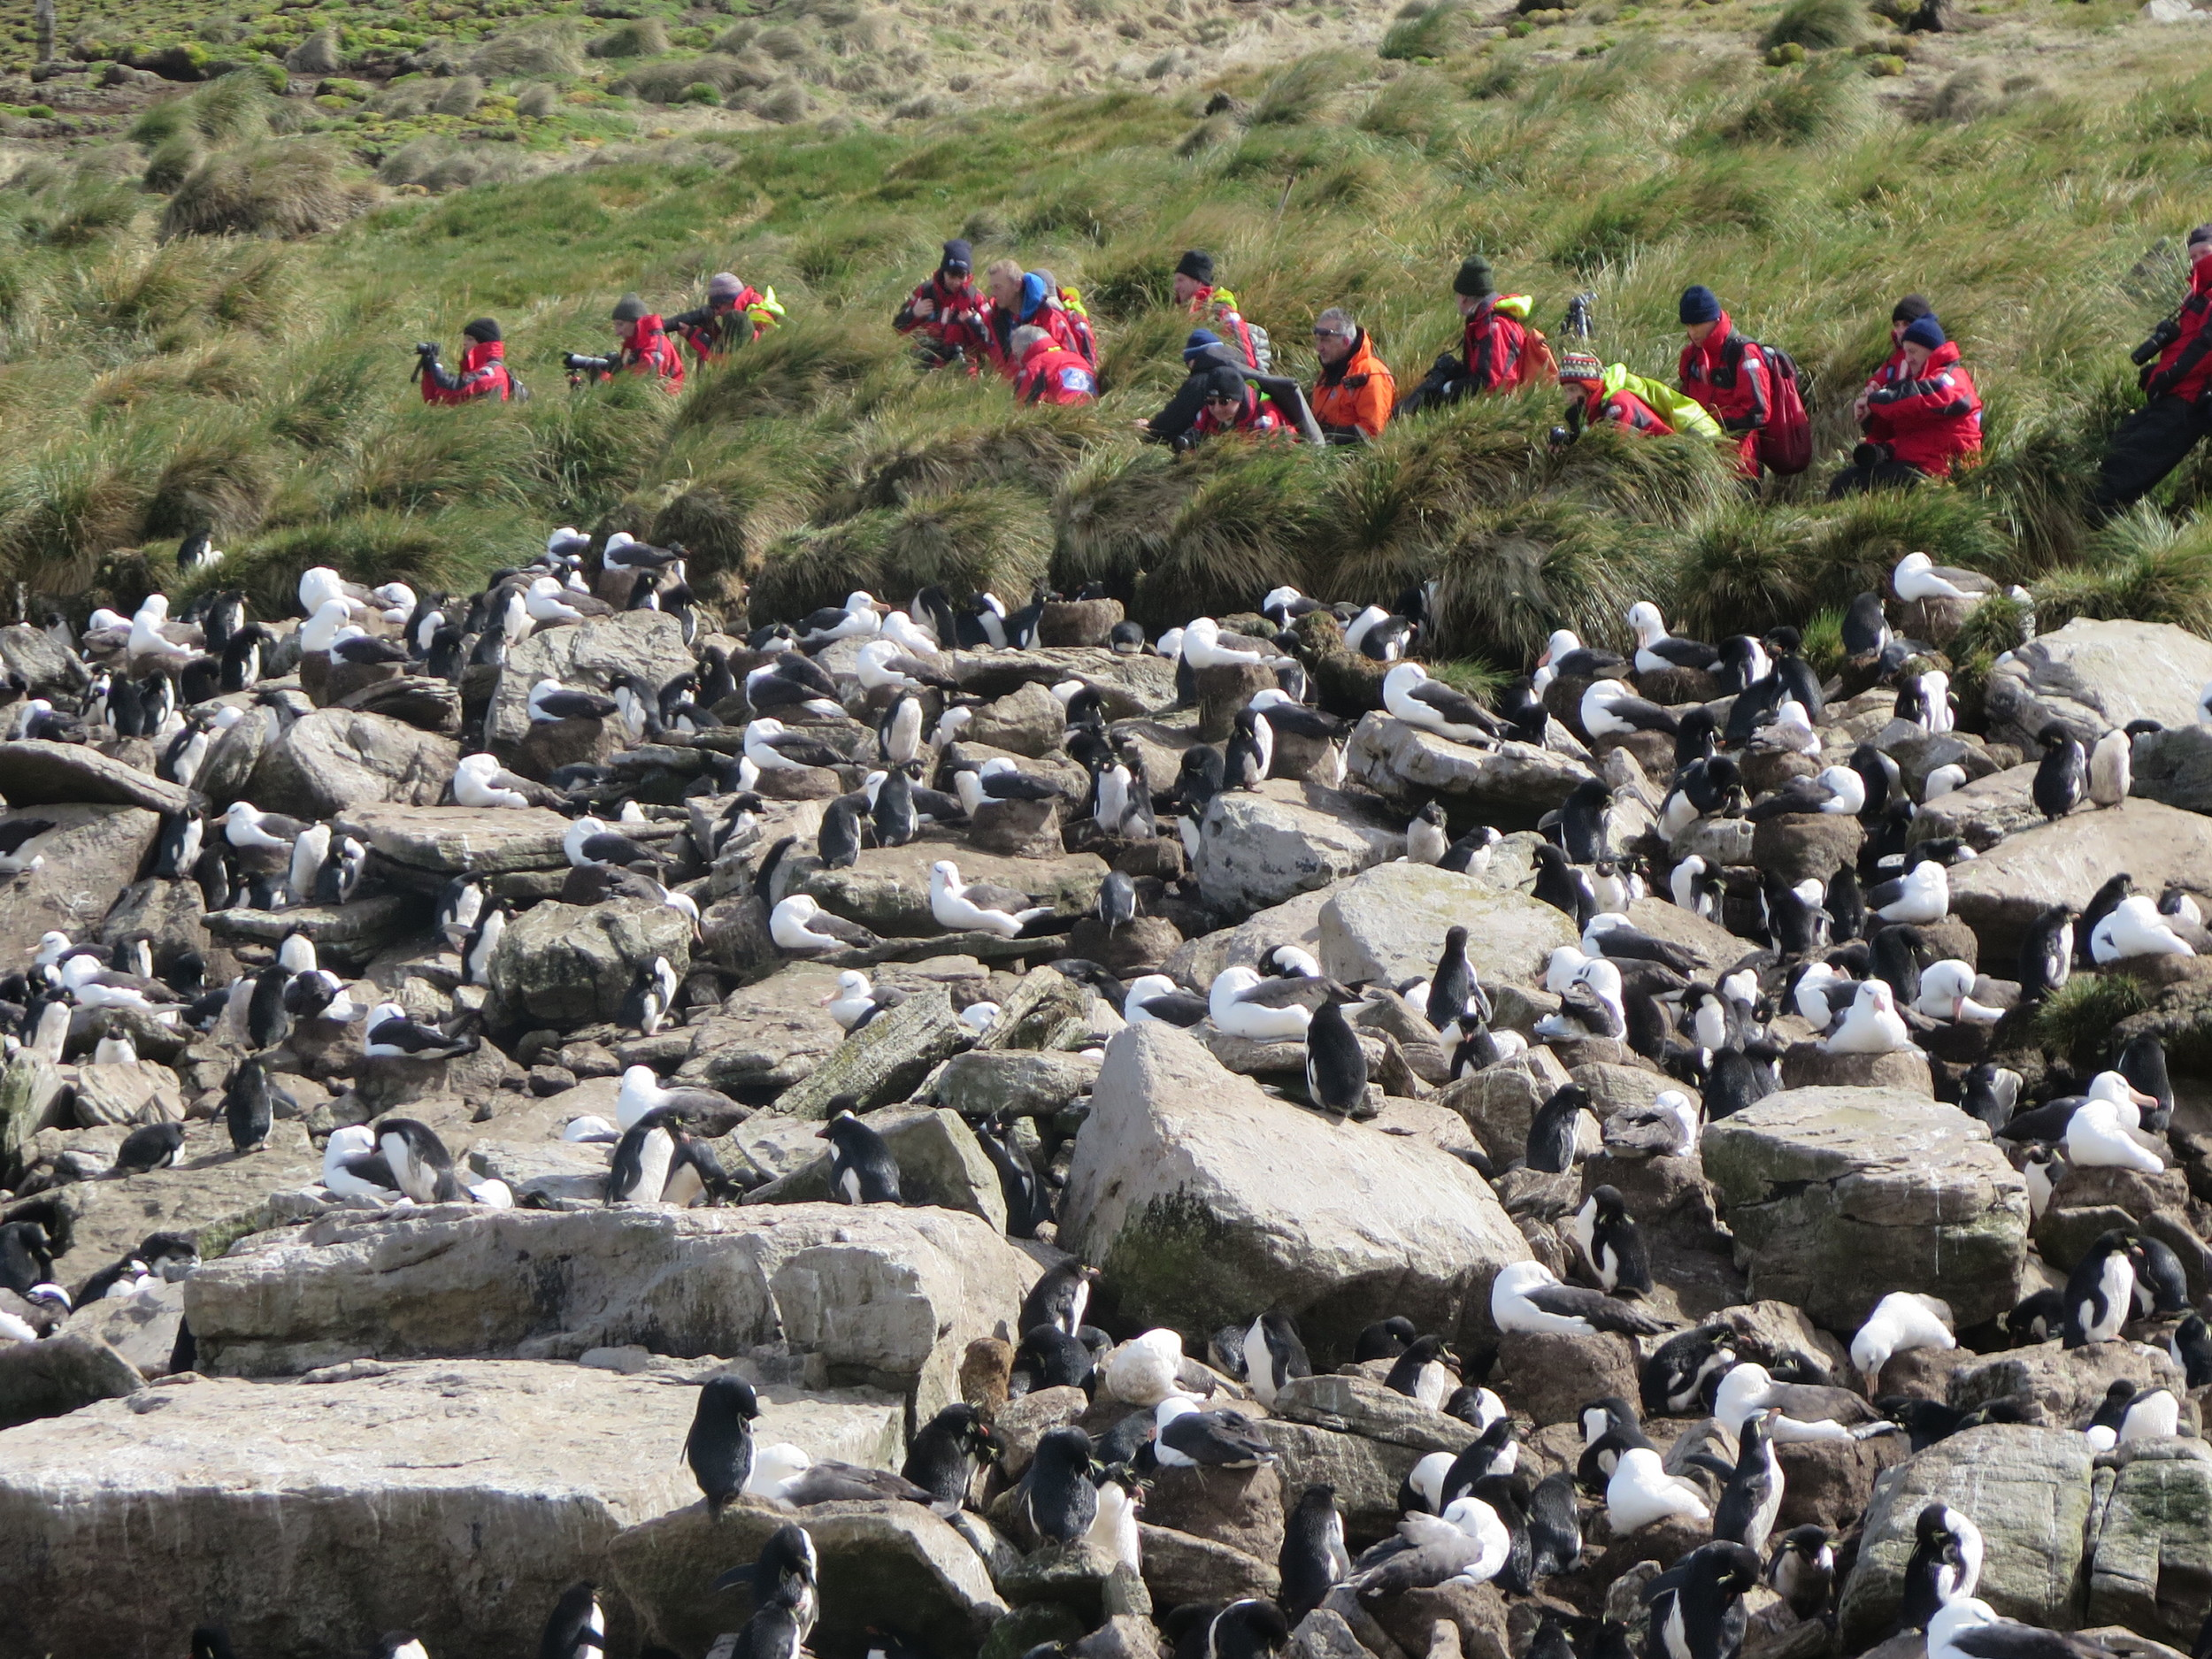 Our group maintained its own perch, in awe of what we were seeing and careful not to disturb either the penguins or the albatrosses.